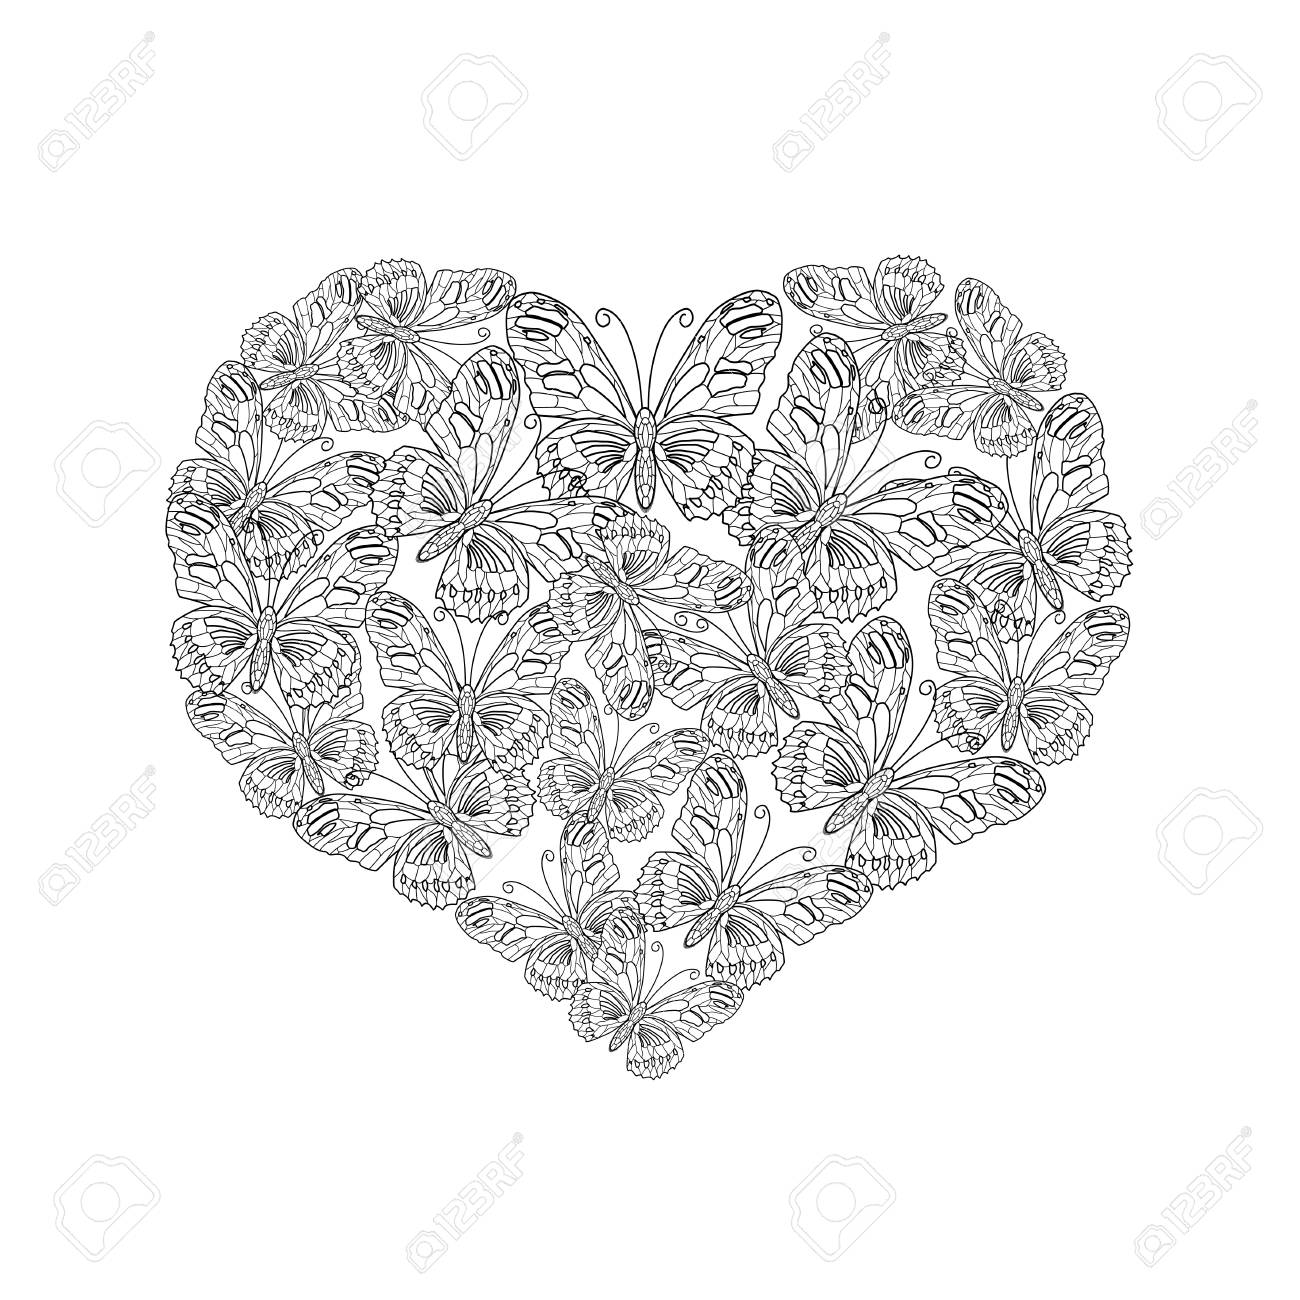 Vector Illustration Of Heart Shape From Black And White Butterfly Royalty Free Cliparts Vectors And Stock Illustration Image 94859053